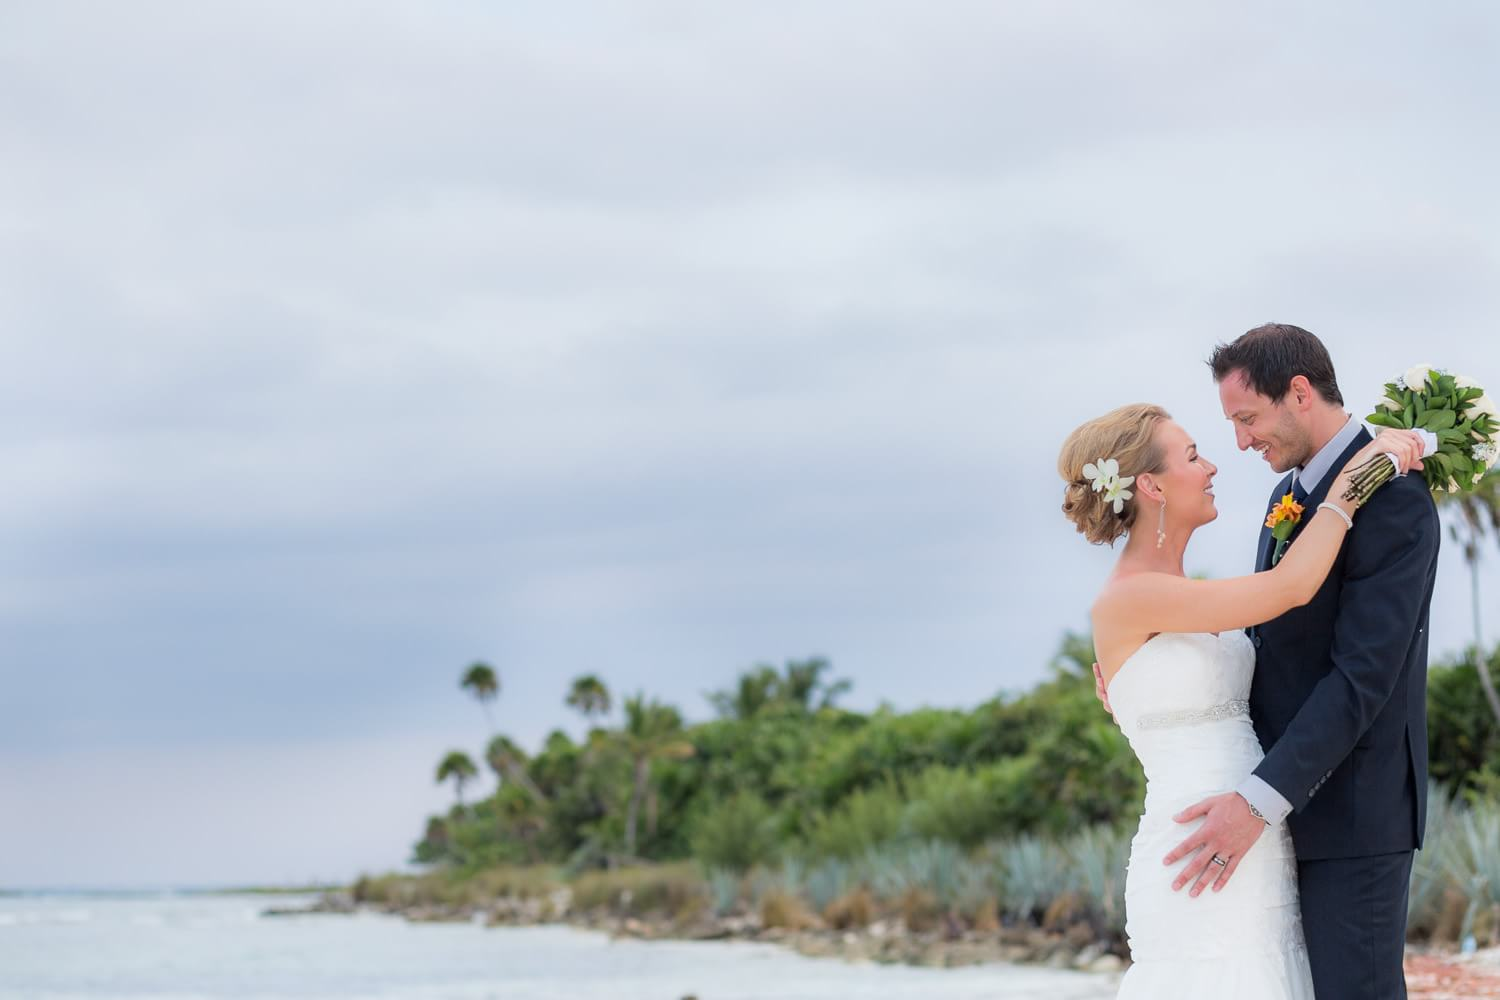 Couple on beach at Mexico wedding phtography